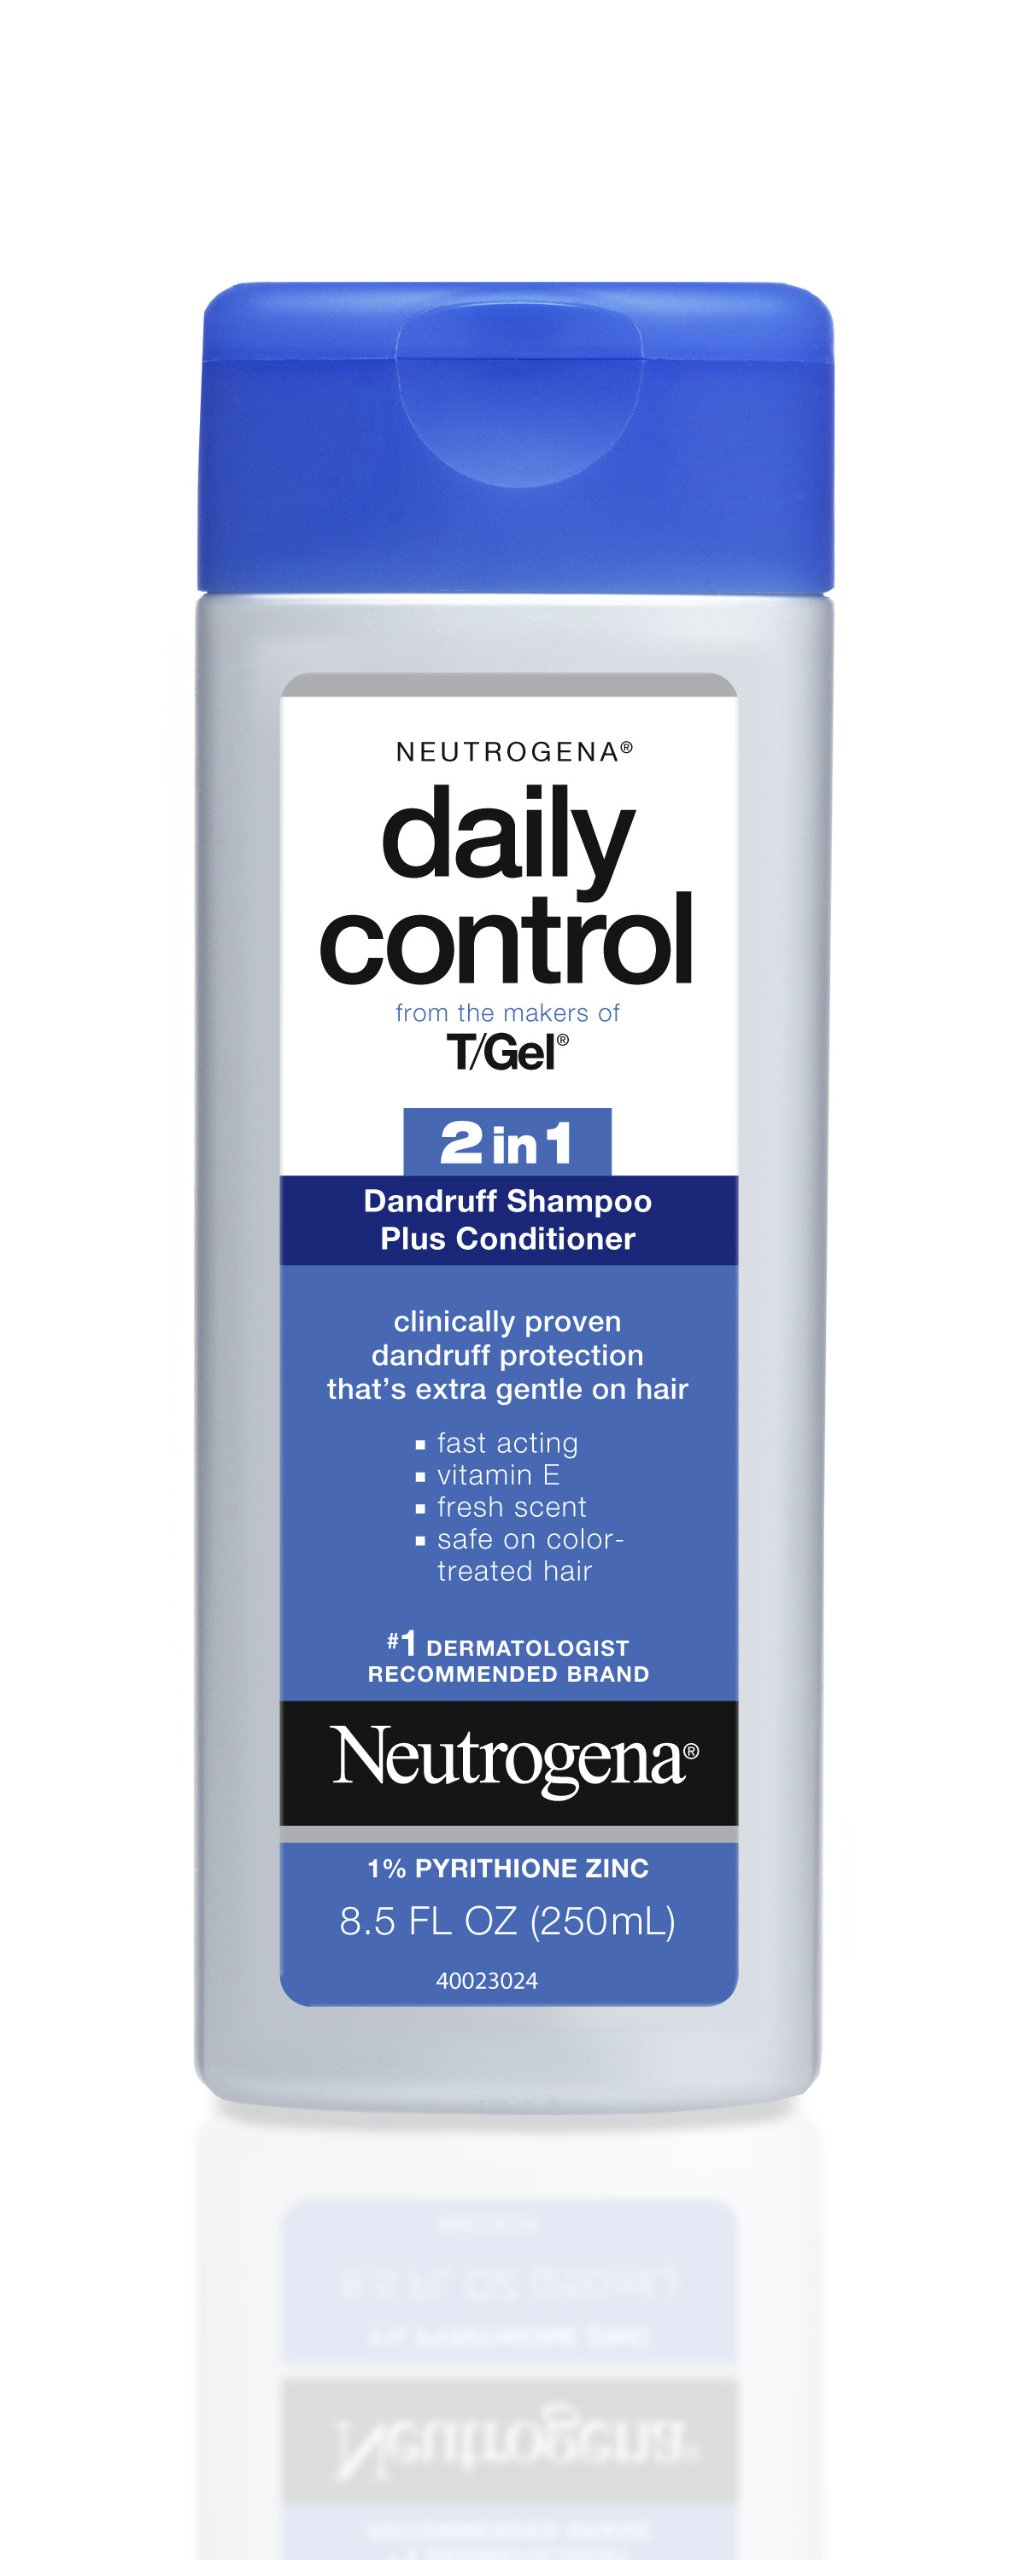 Neutrogena T/Gel Daily Control 2-in-1 Anti-Dandruff Shampoo Plus Conditioner with Vitamin E and Pyrithione Zinc, Fast Acting Relief for Scalp Itching and Flaking, 8.5 fl. oz (Pack of 2) by Neutrogena